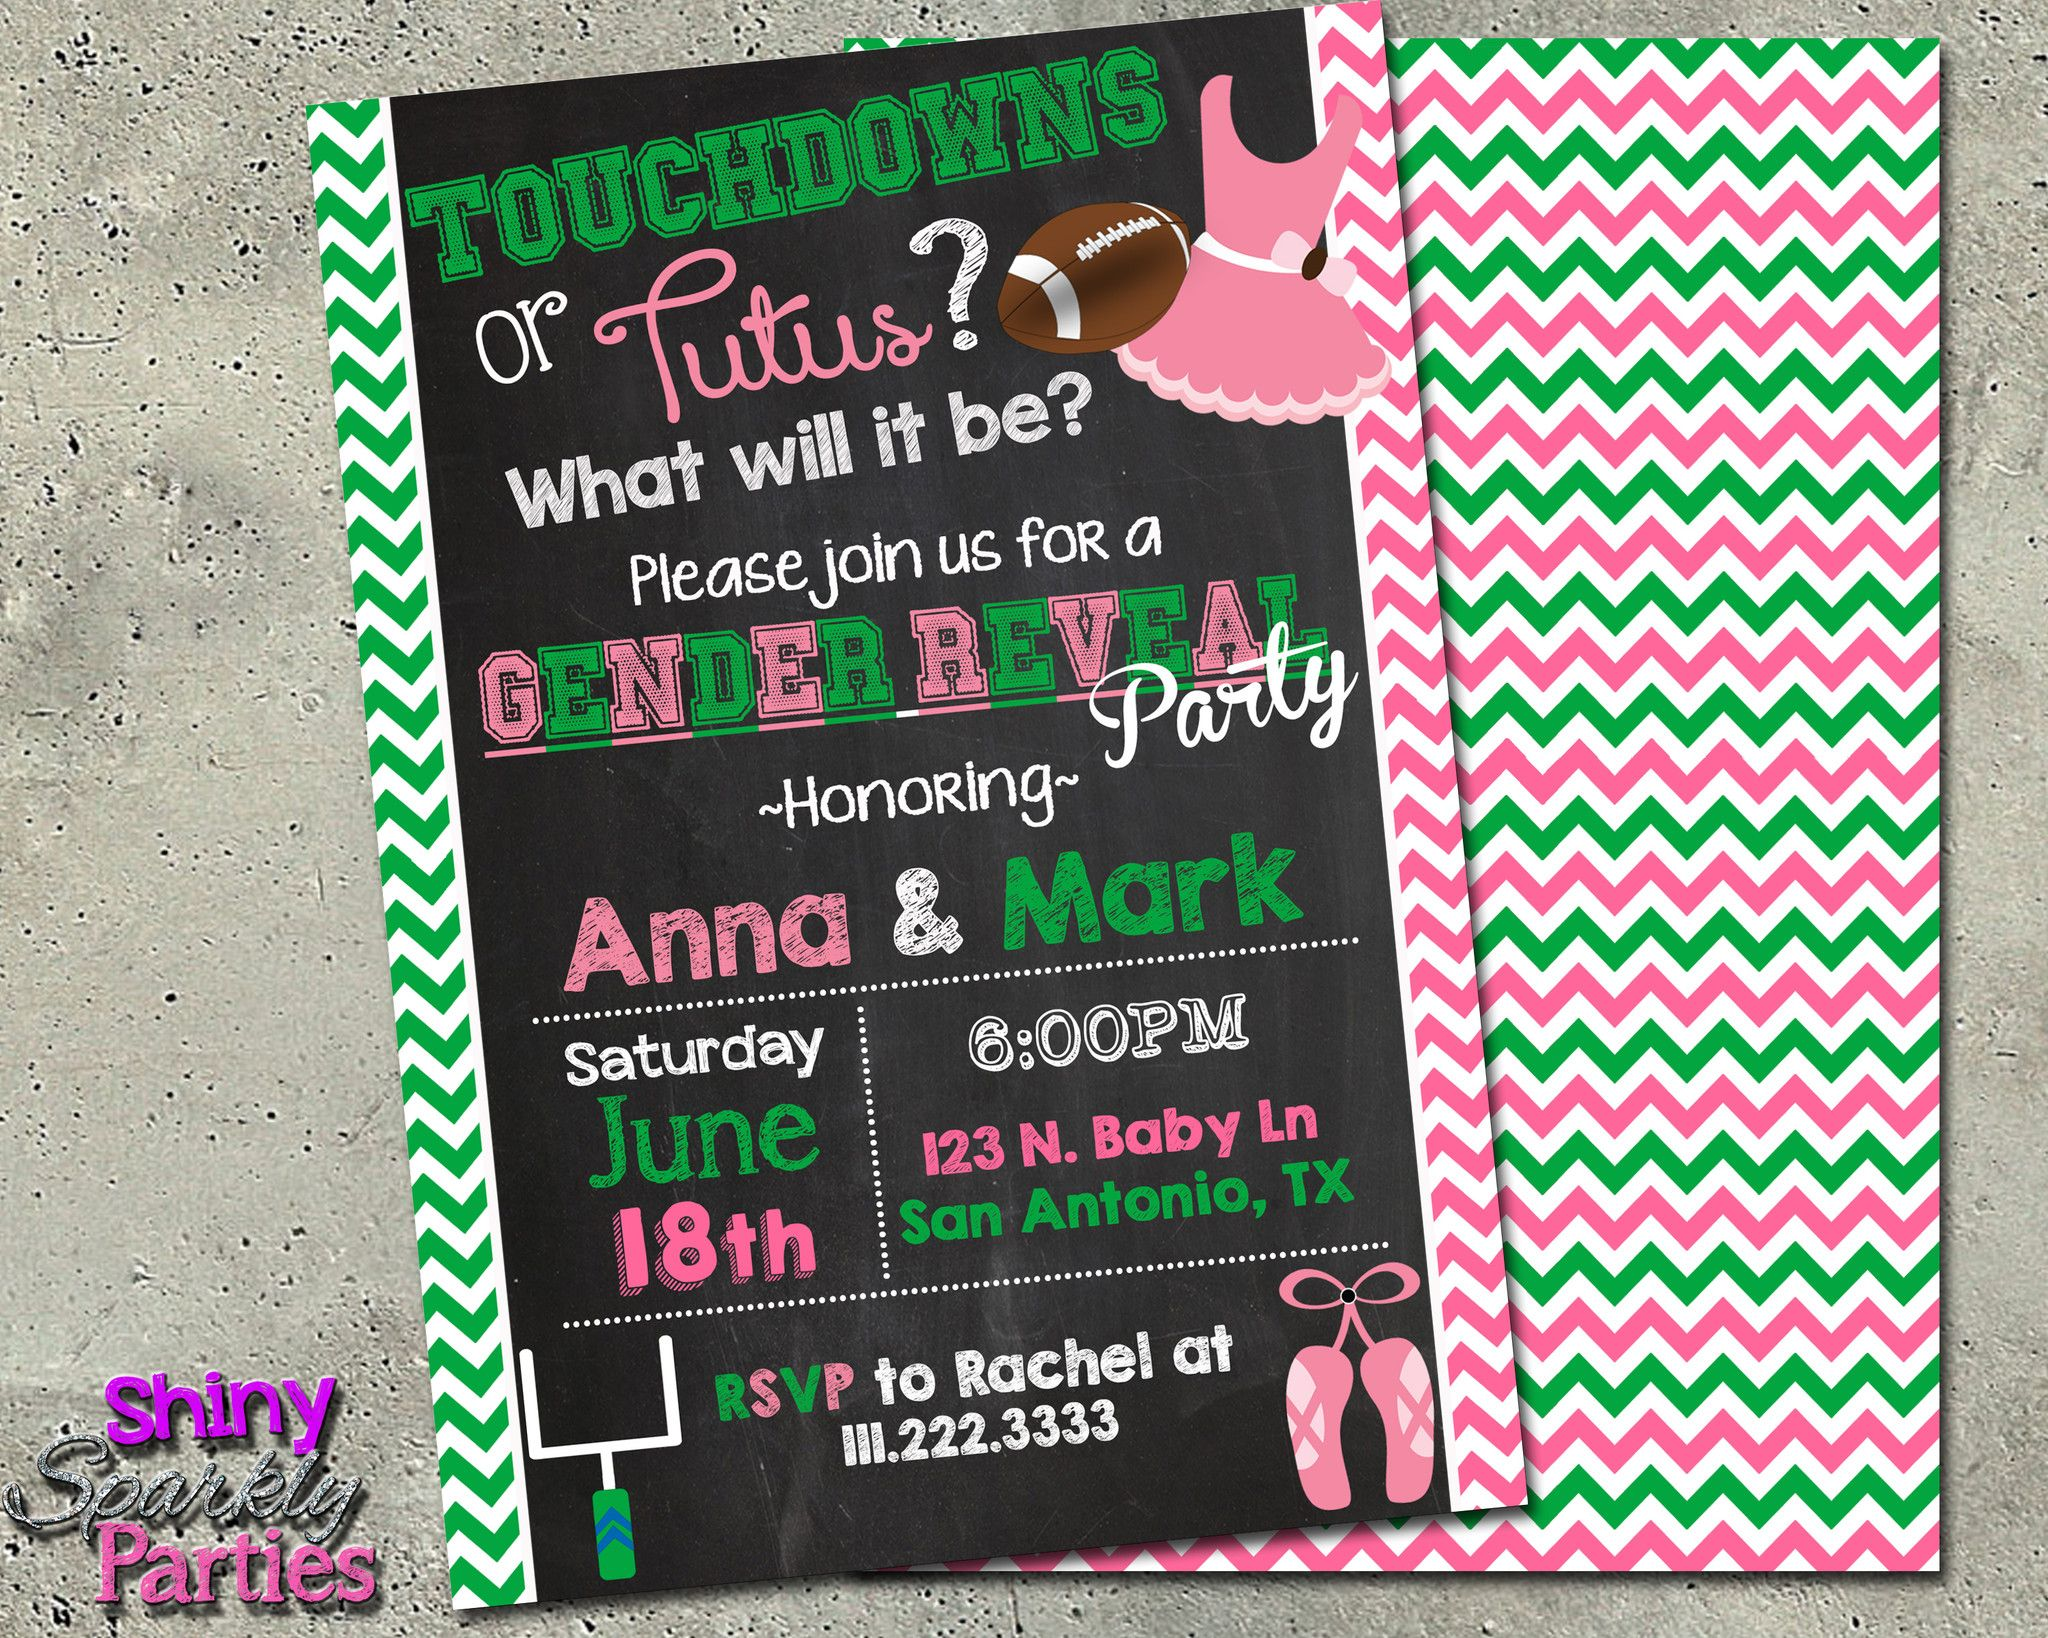 Printable Touchdowns Or Tutus Gender Reveal Party Invitation ...